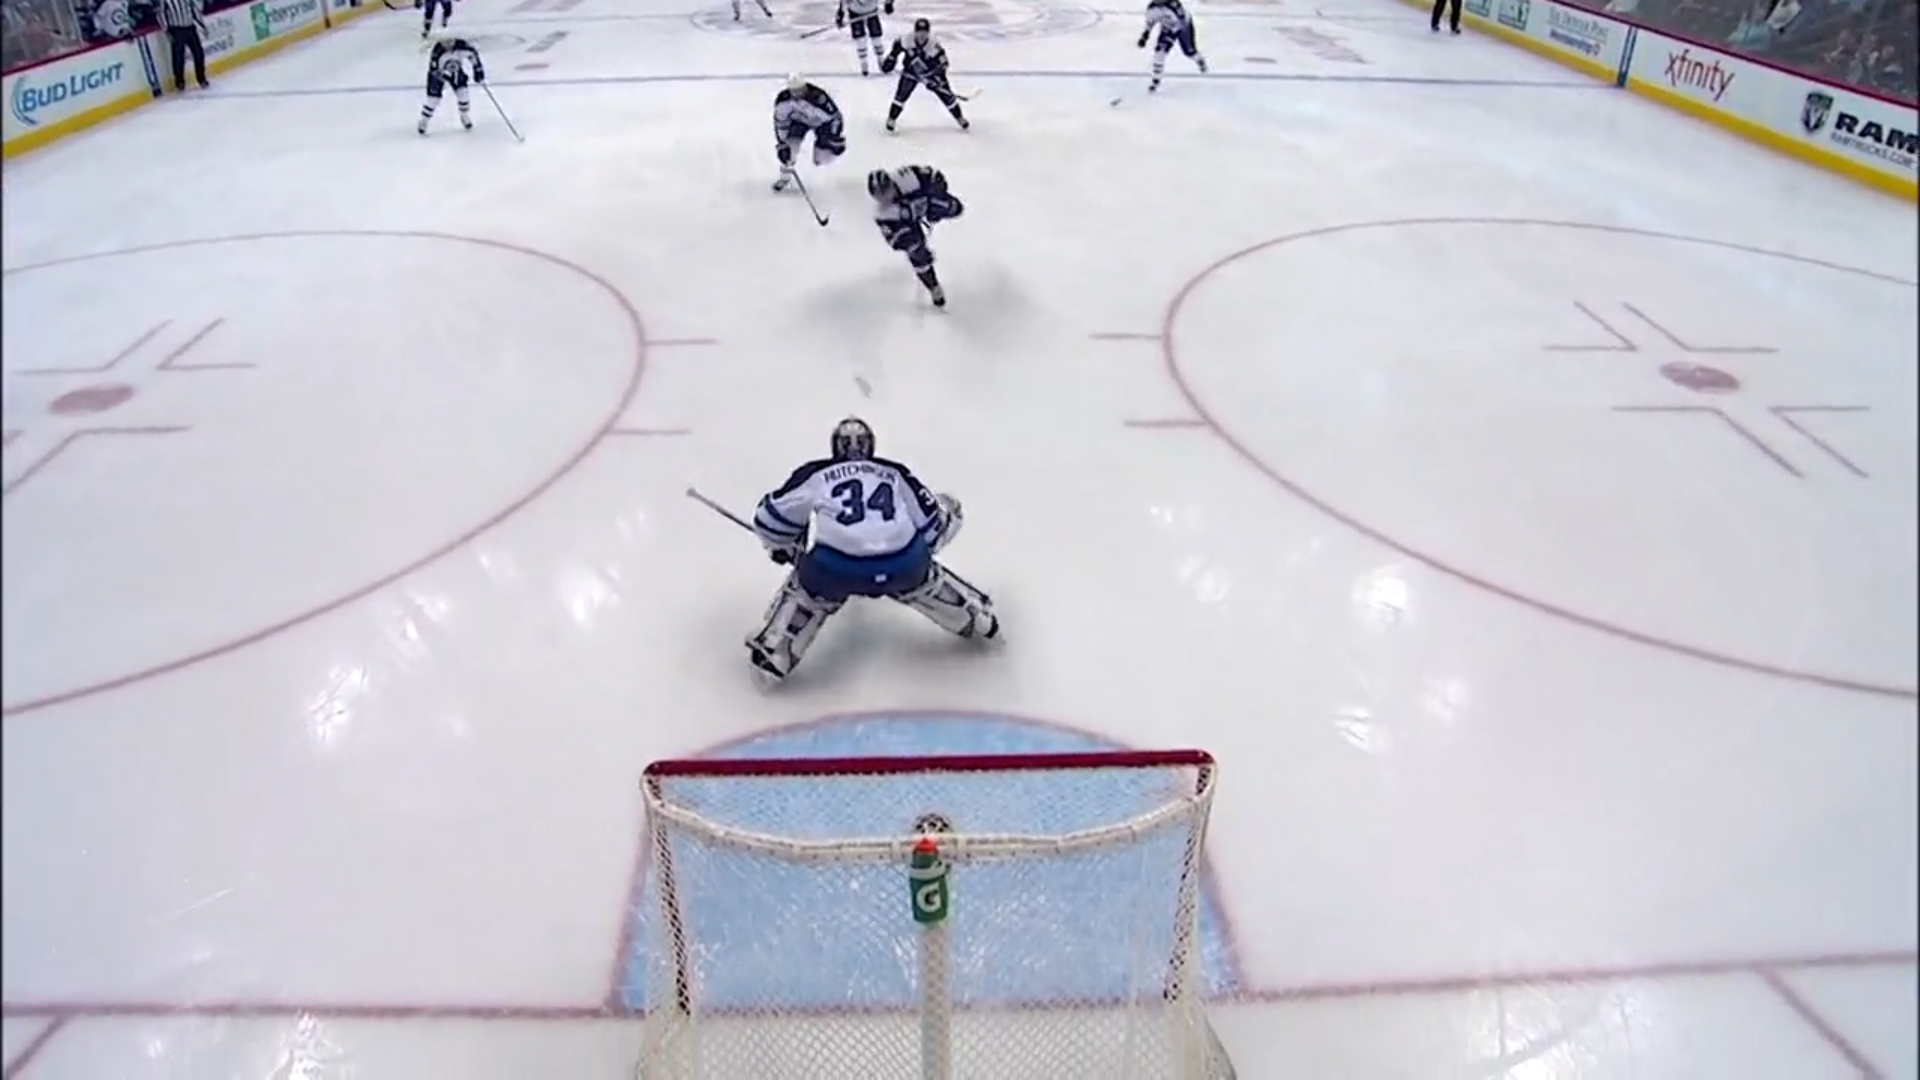 Patrick-Roy-Show-Ep8-Top-Plays.jpg